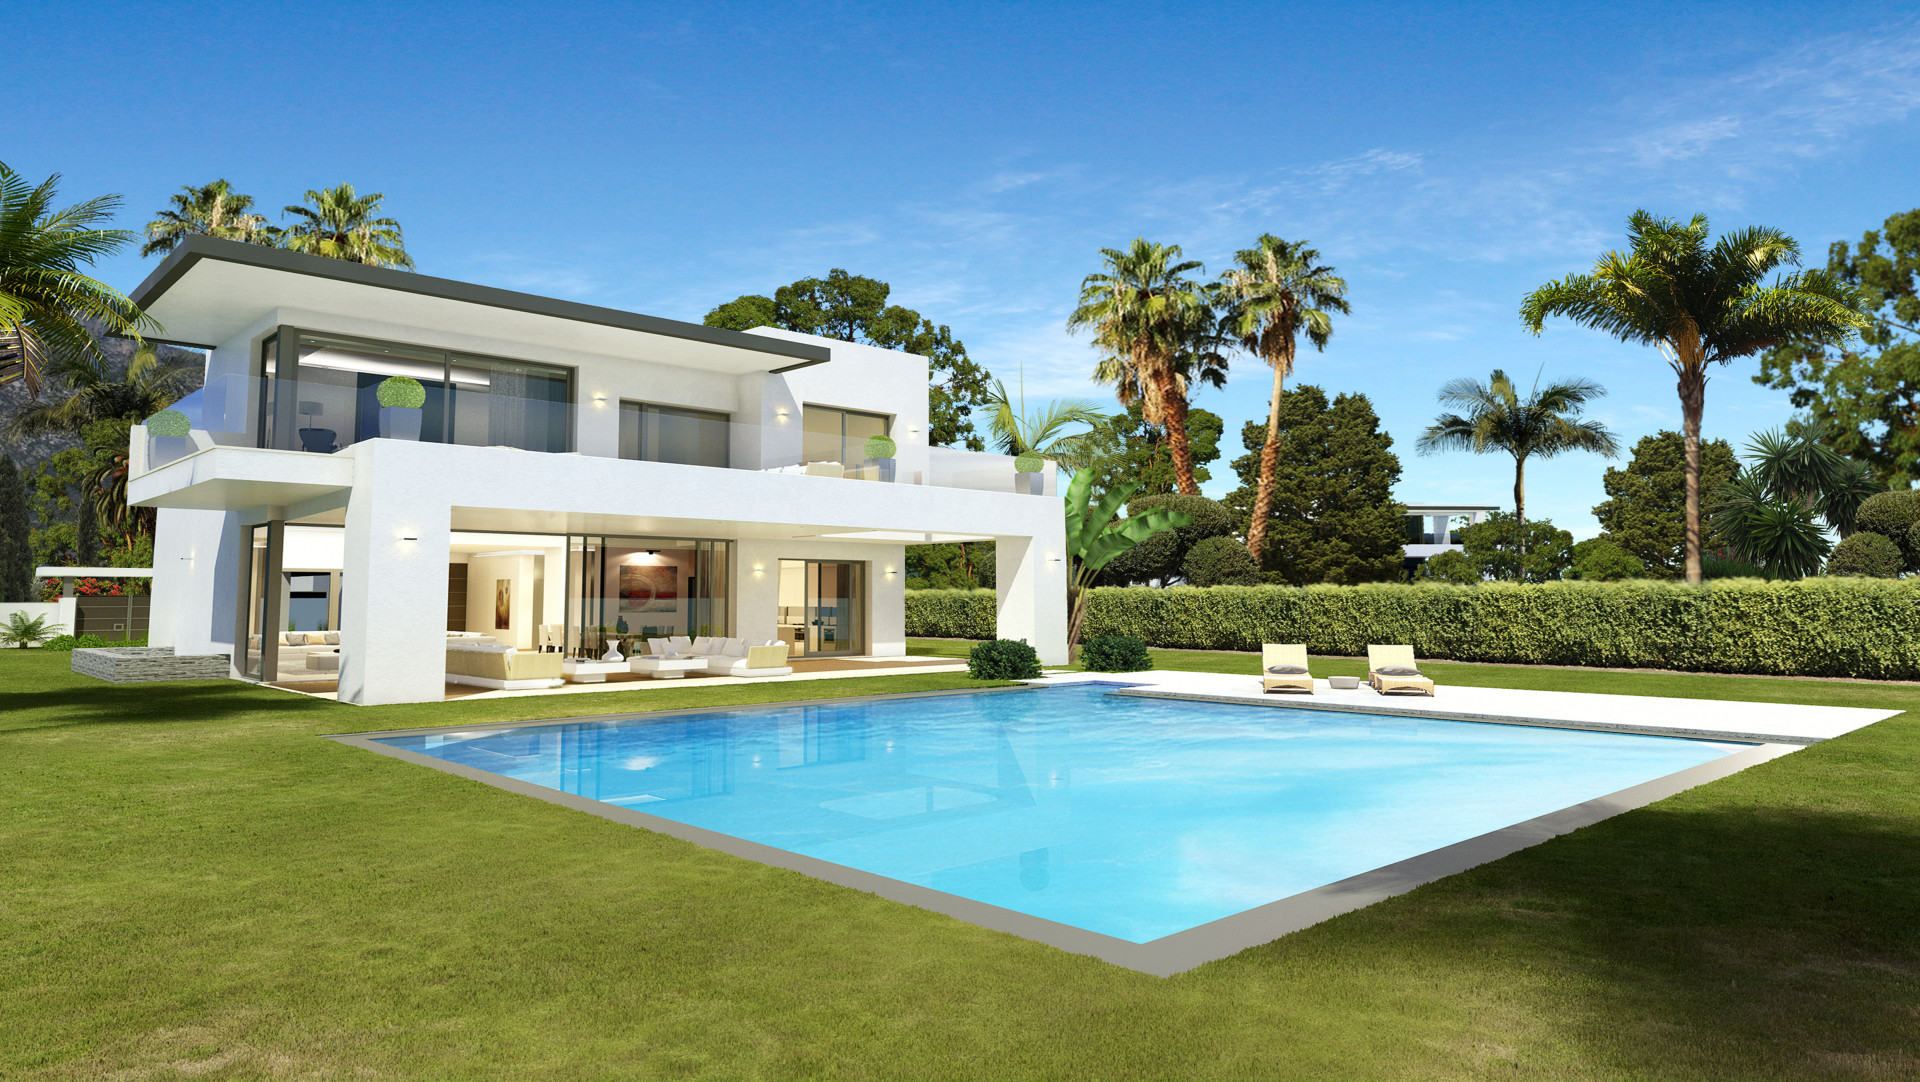 Gated community of luxurious modern villas in The Golden Mile – Marbella